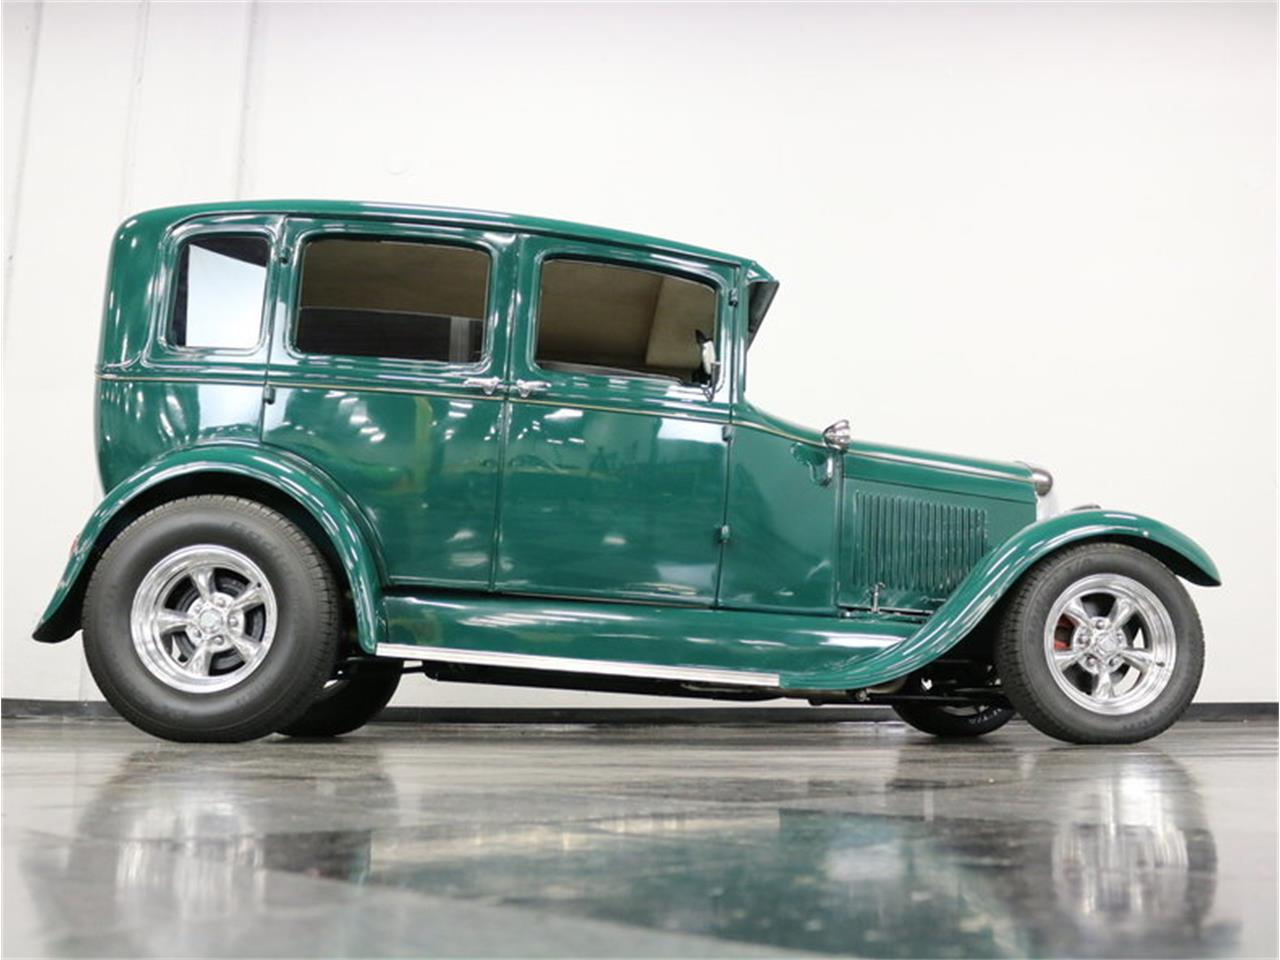 Large Picture of '29 Ford Model A located in Ft Worth Texas Offered by Streetside Classics - Dallas / Fort Worth - MAV8